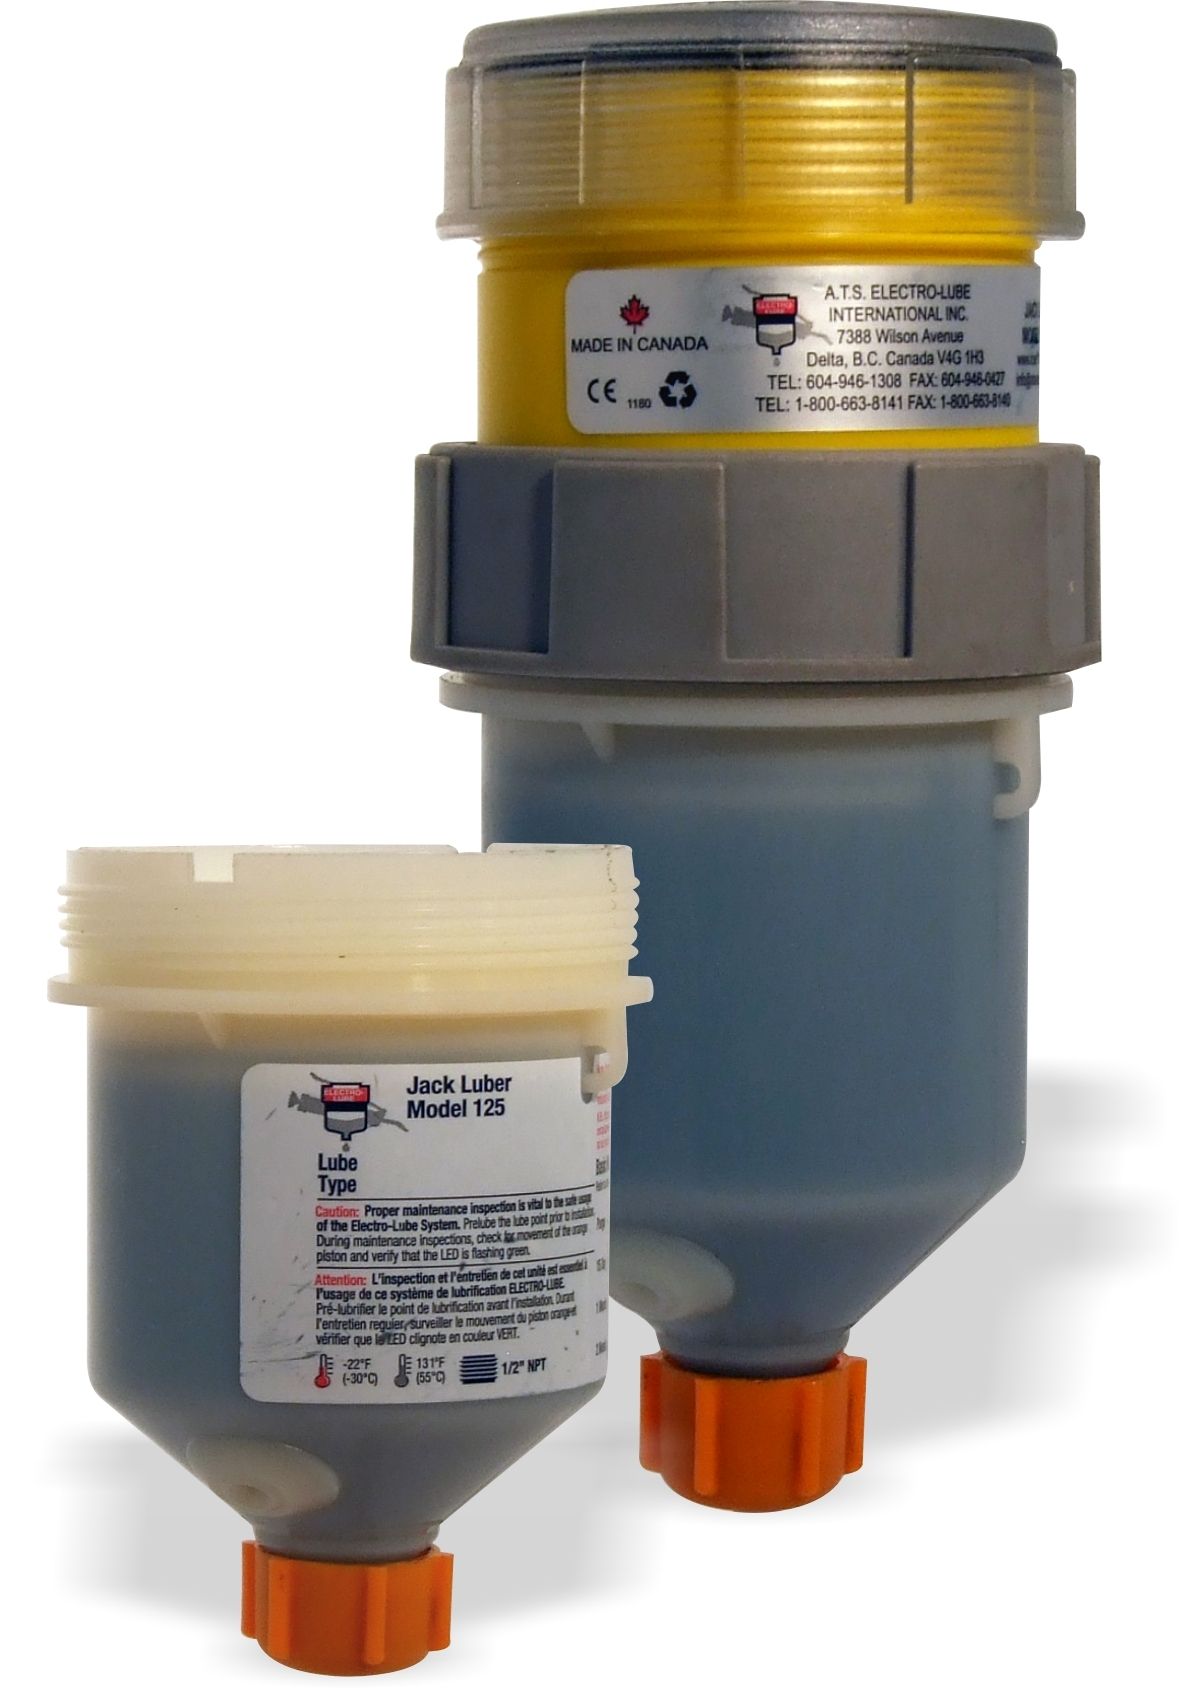 ATS Electro-luber jack luber is a motor driven ultimate lubricator with our patented jack screw technology